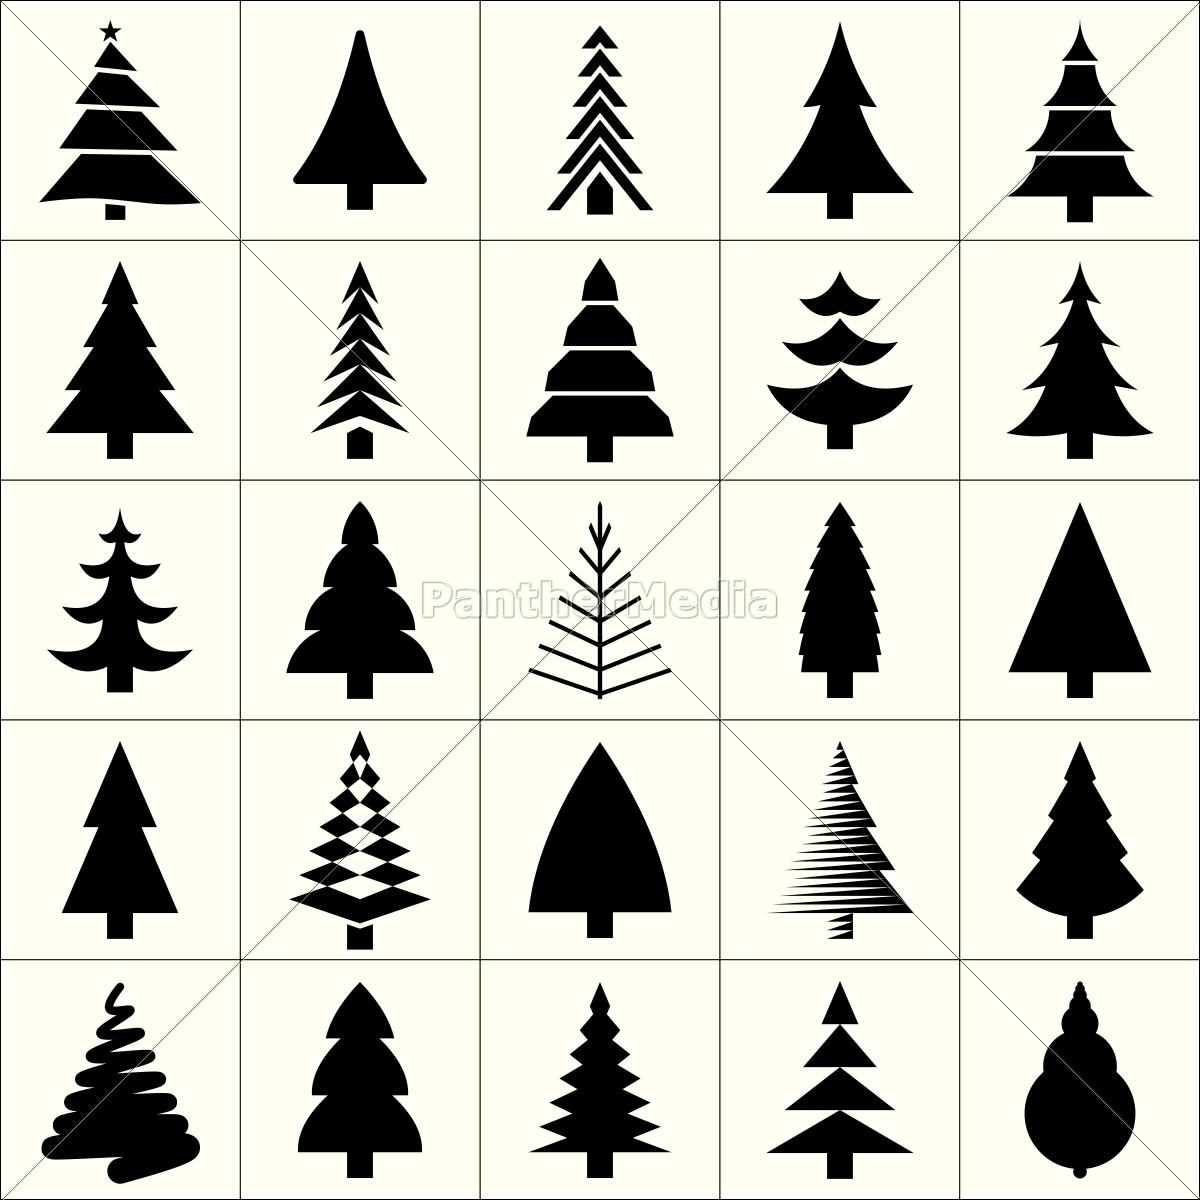 Christmas Tree Icon.Royalty Free Vector 12930164 Christmas Tree Silhouette Design Vector